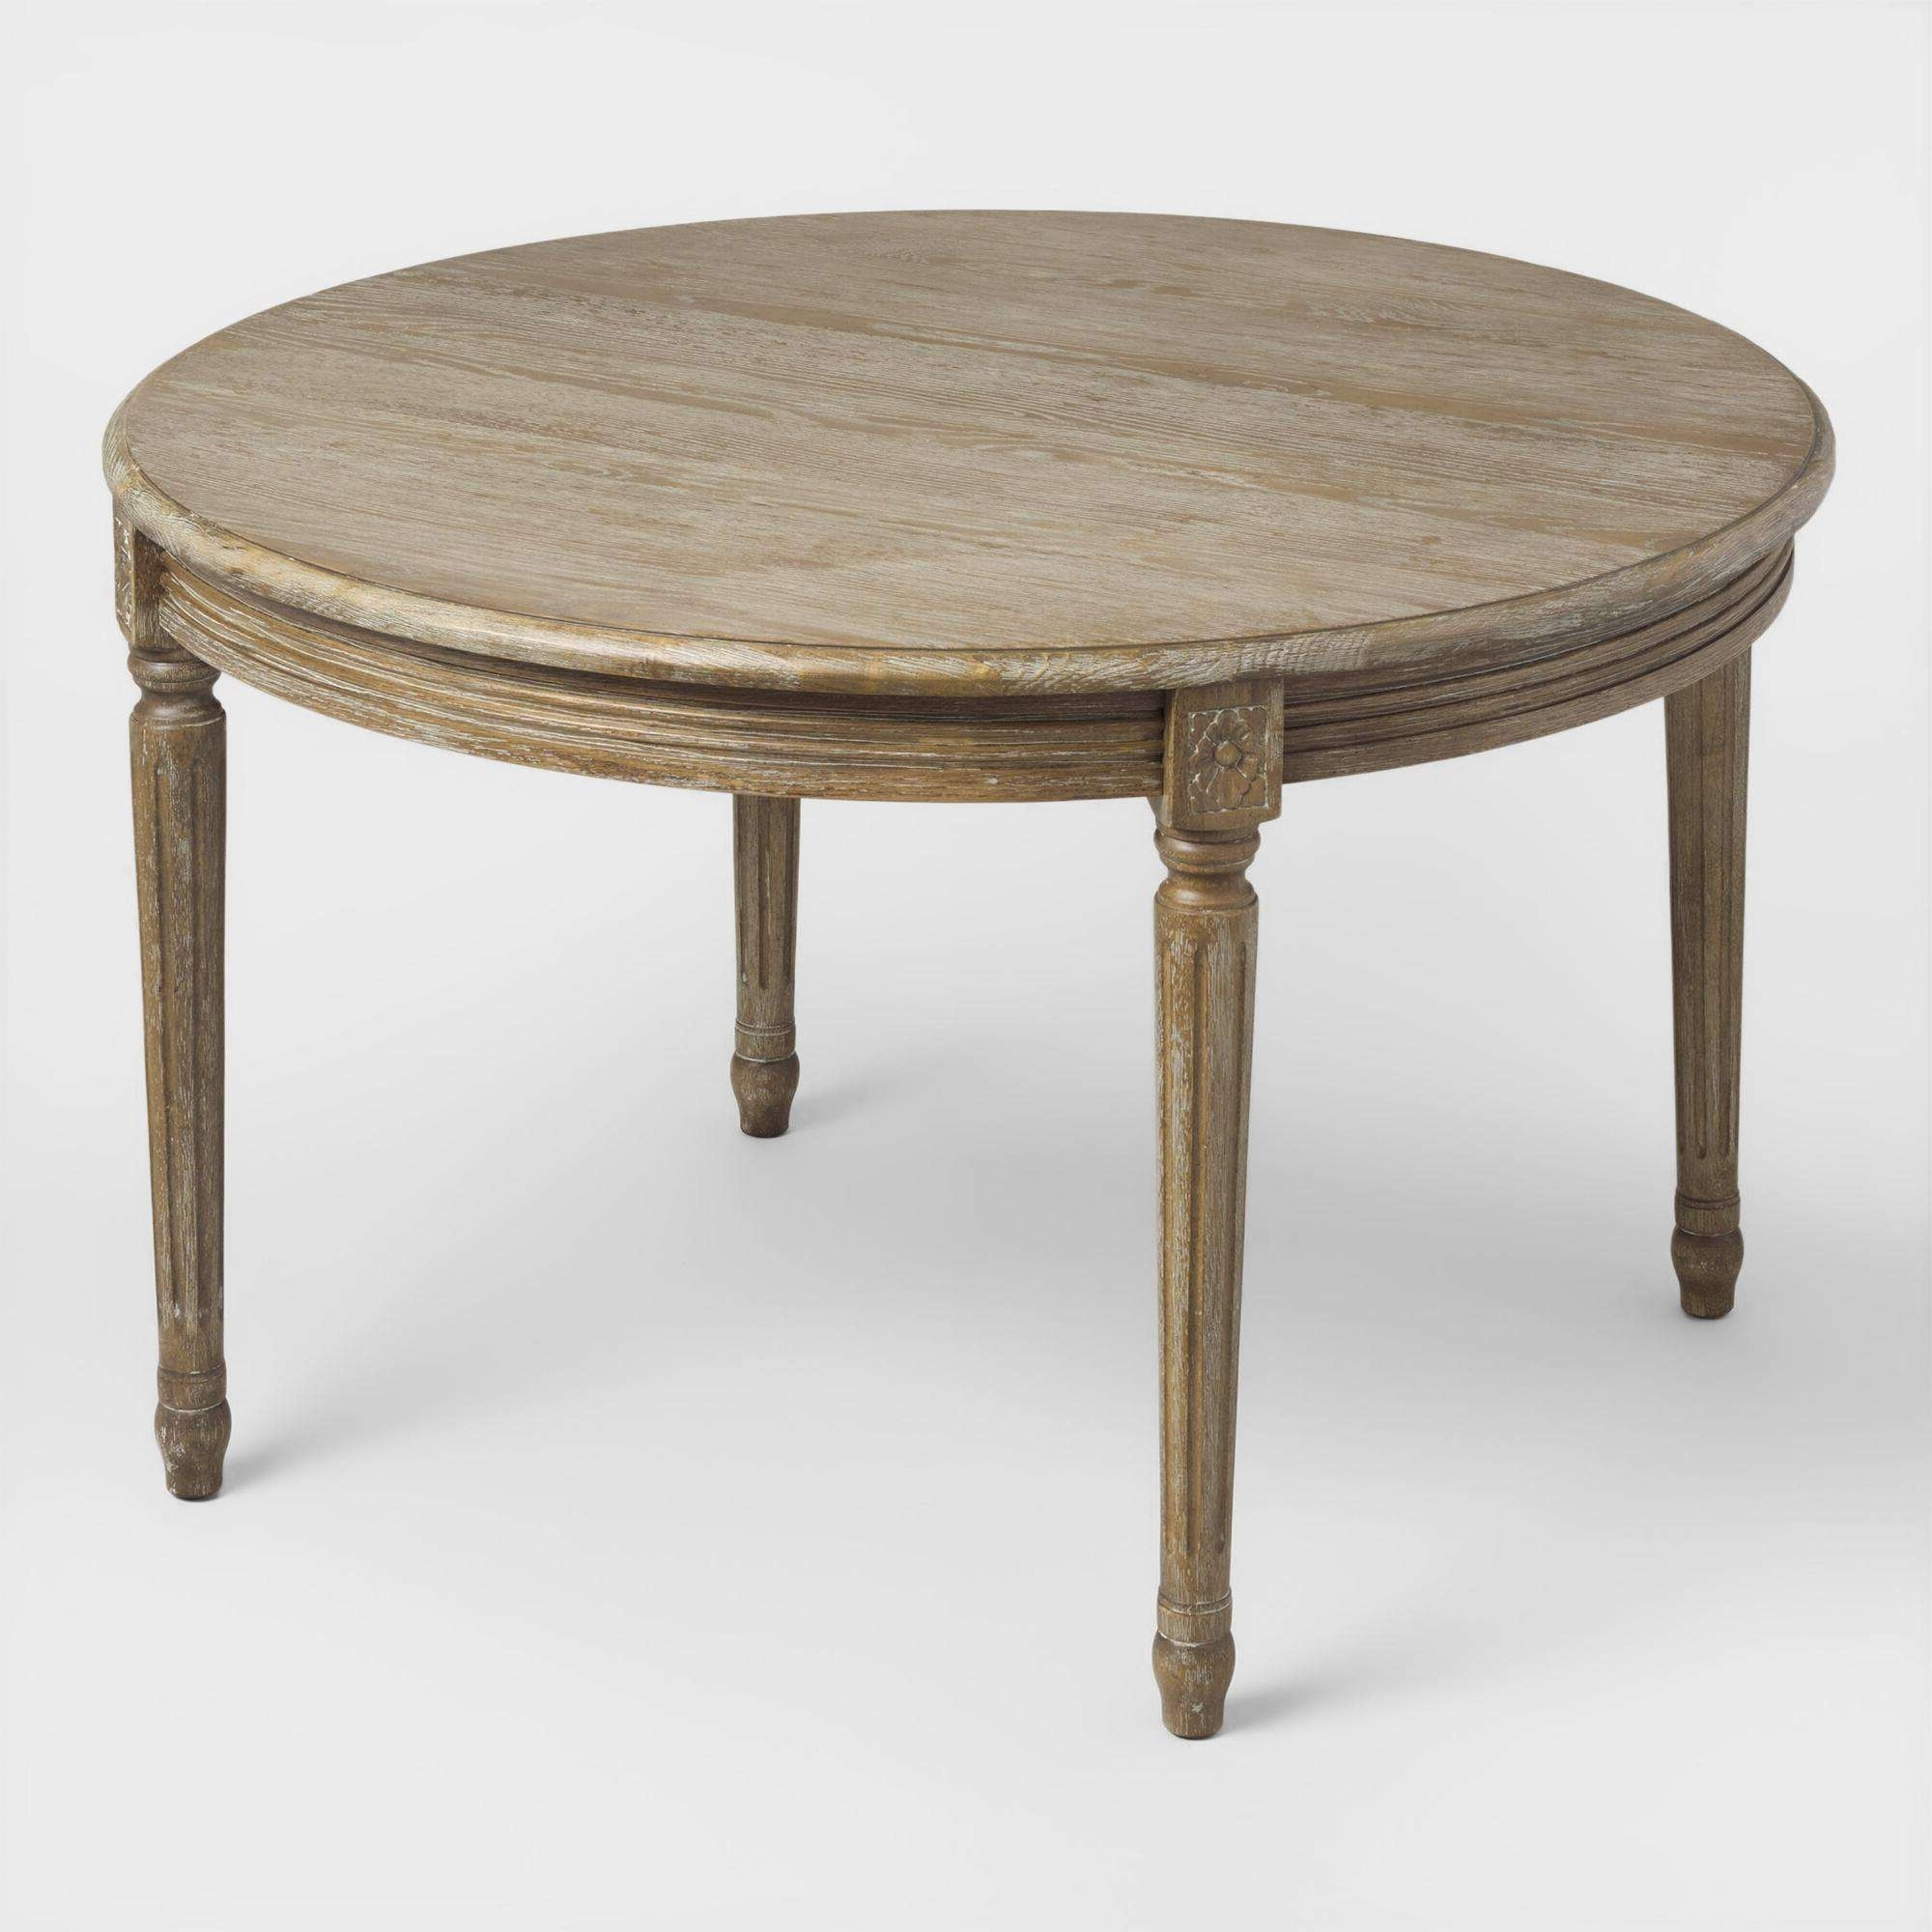 2018 Round Glass And Oak Dining Tables within Delightful Italian Round Wooden Dining Table For Sale At – Round